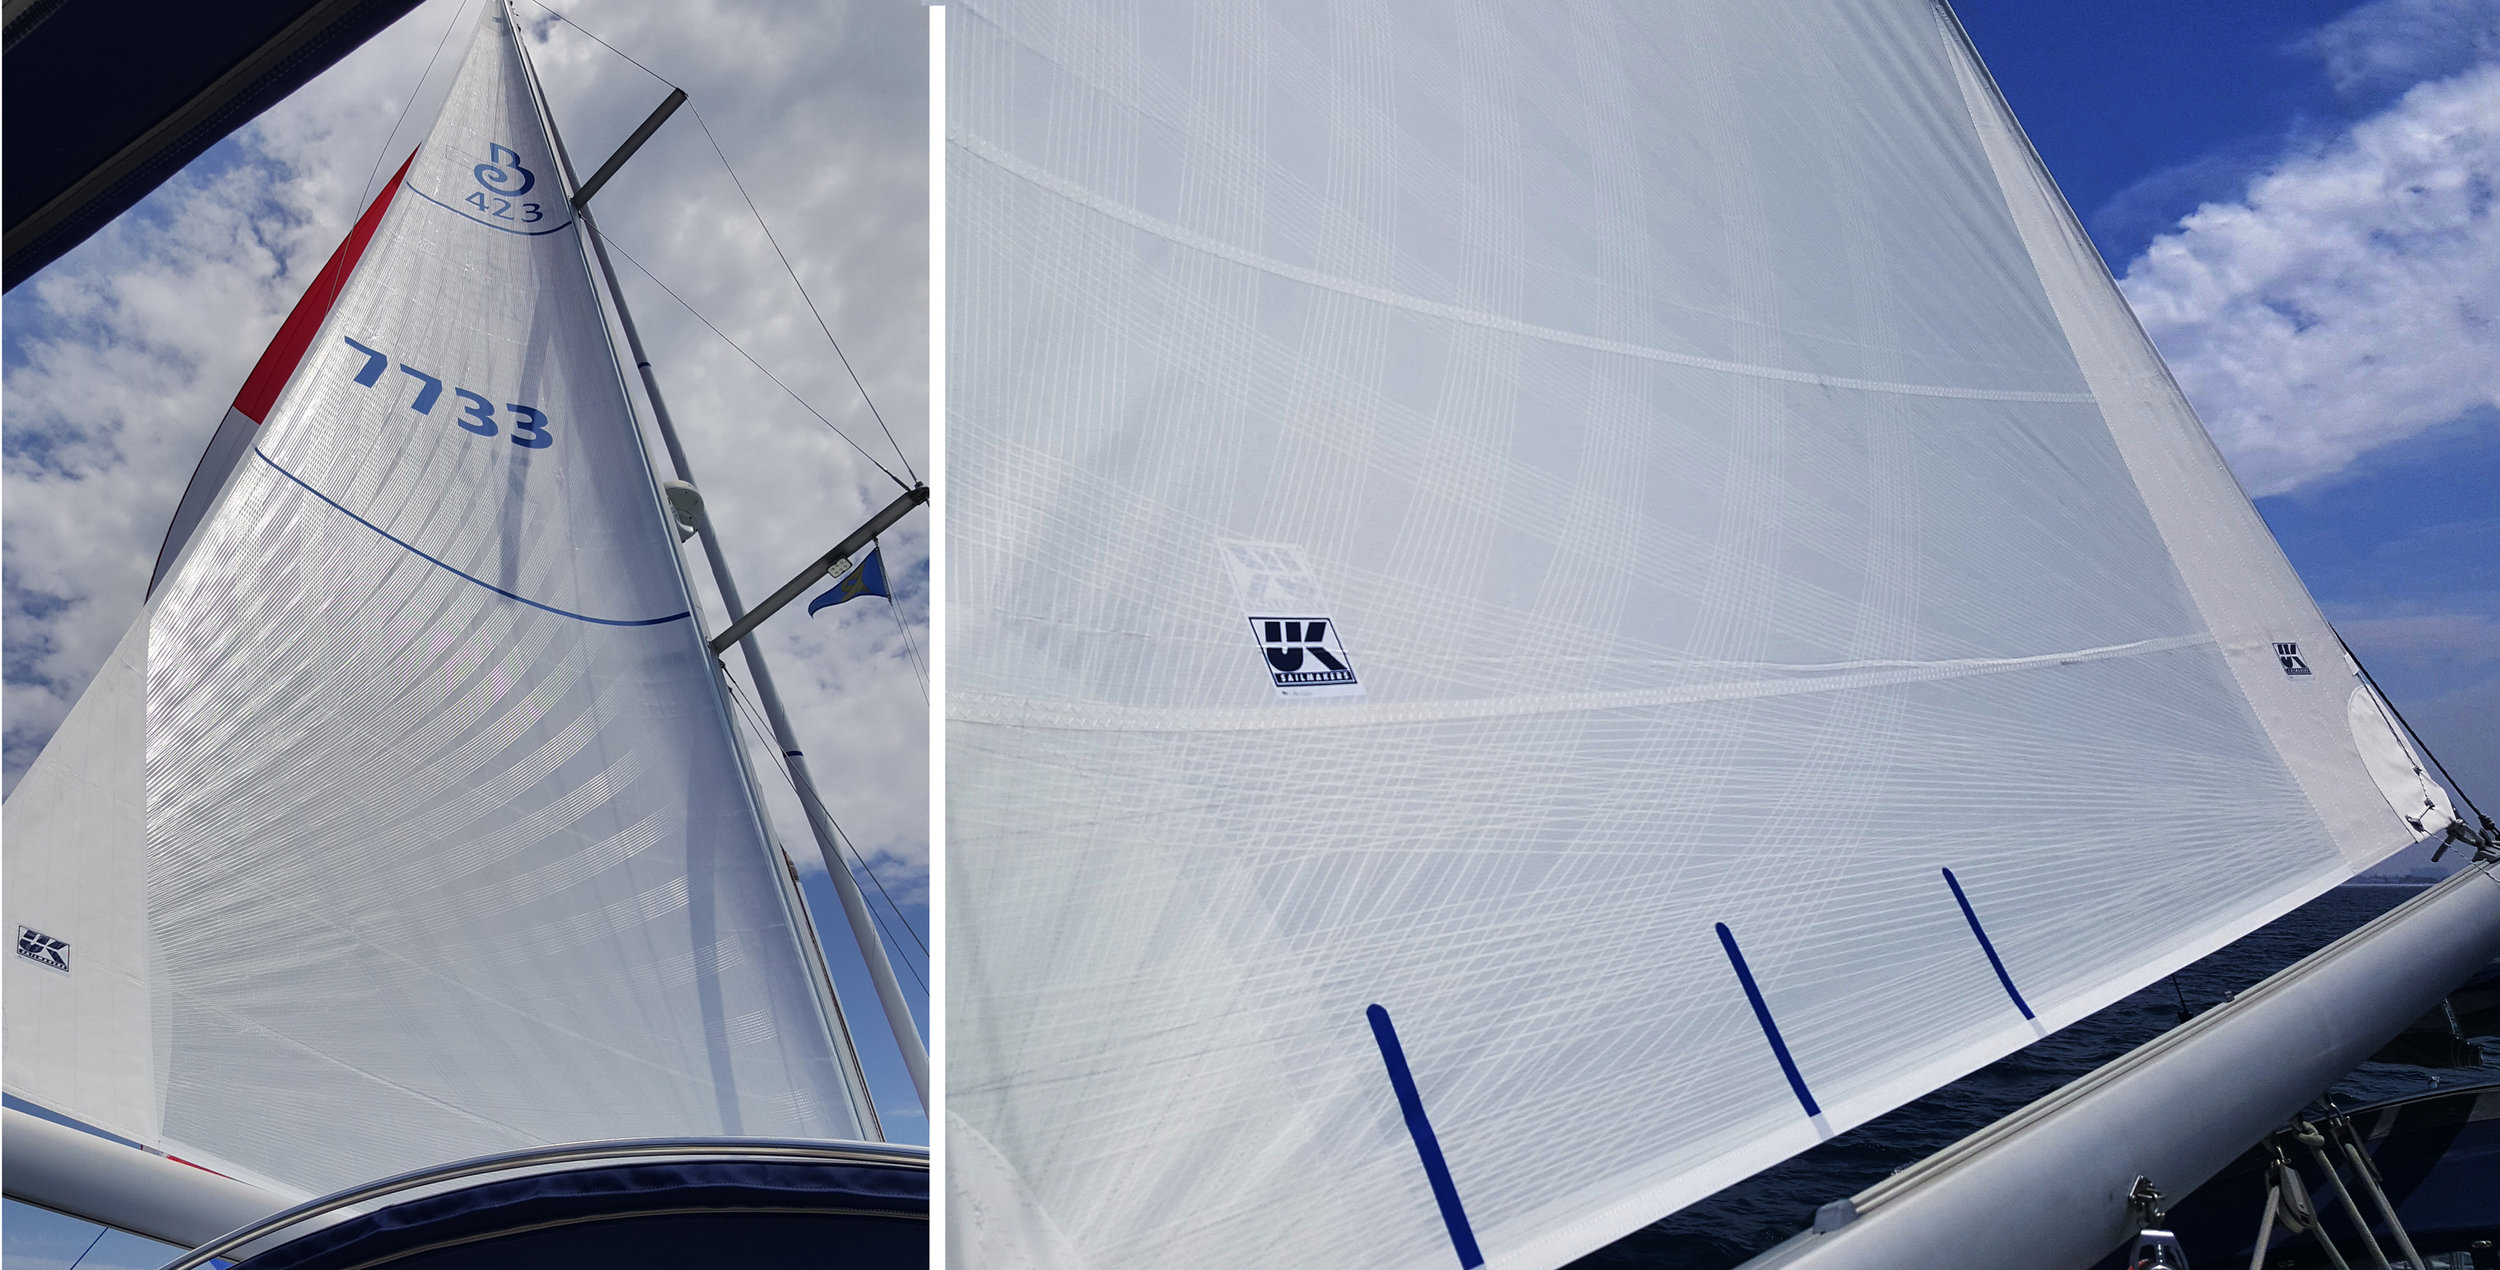 Two views of an X-Drive Silver Roller Furling main on a Beneteau 423. This is a double taffeta sail with white taffeta bonded over the continuous yarn grid as well on the second side of the sail. X-Drive Silver sails not only provide better sailing performance than basic dacron sails, but since they also roller furl better since they don't stretch and jam while being rolled into the mast.